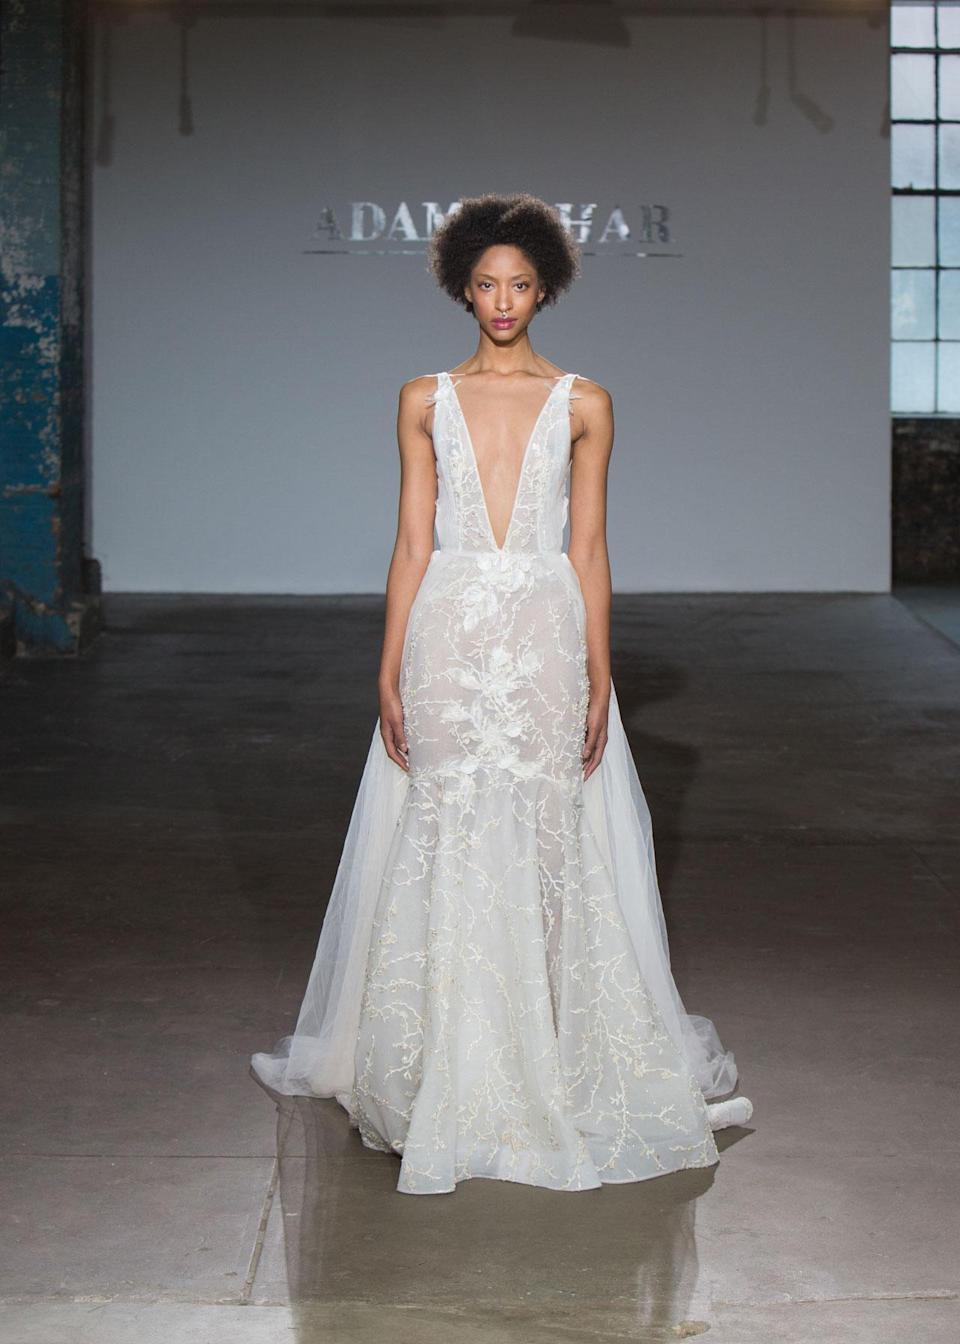 <p>Deep V-cut, semi-sheer wedding dress. (Photo: Hatnim Lee) </p>